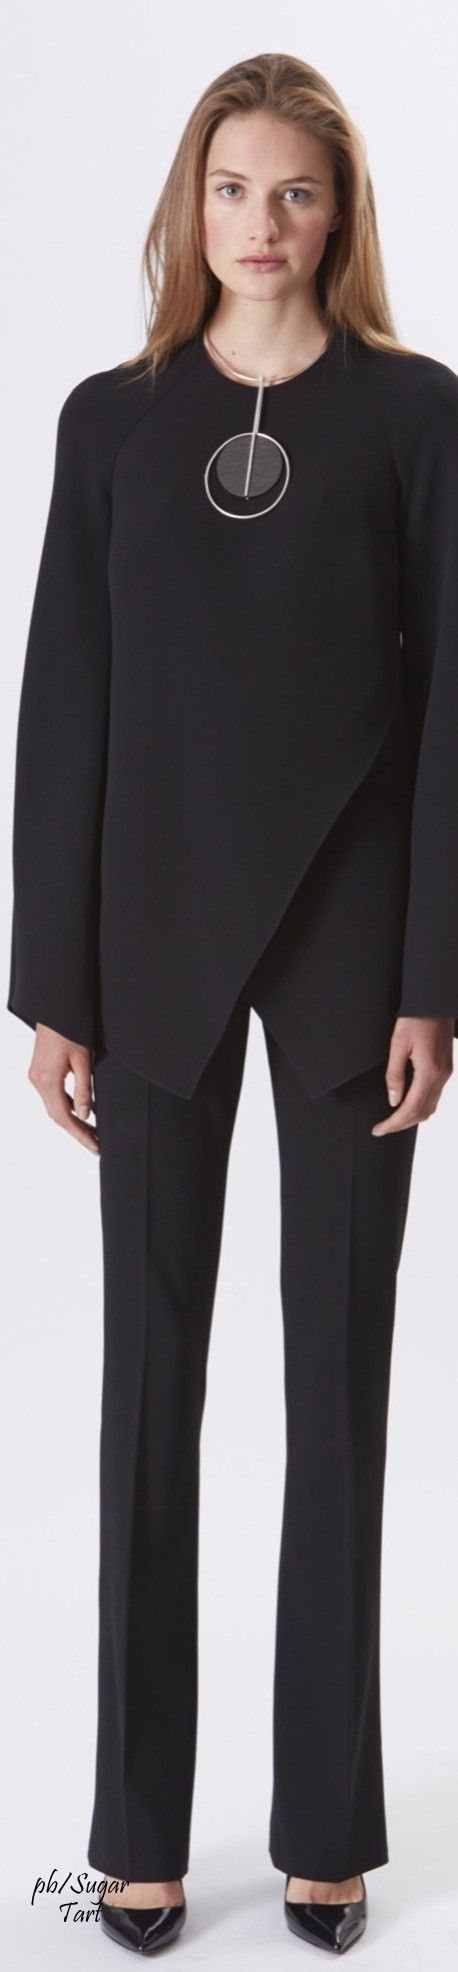 *****Ralph Lauren Resort 2016